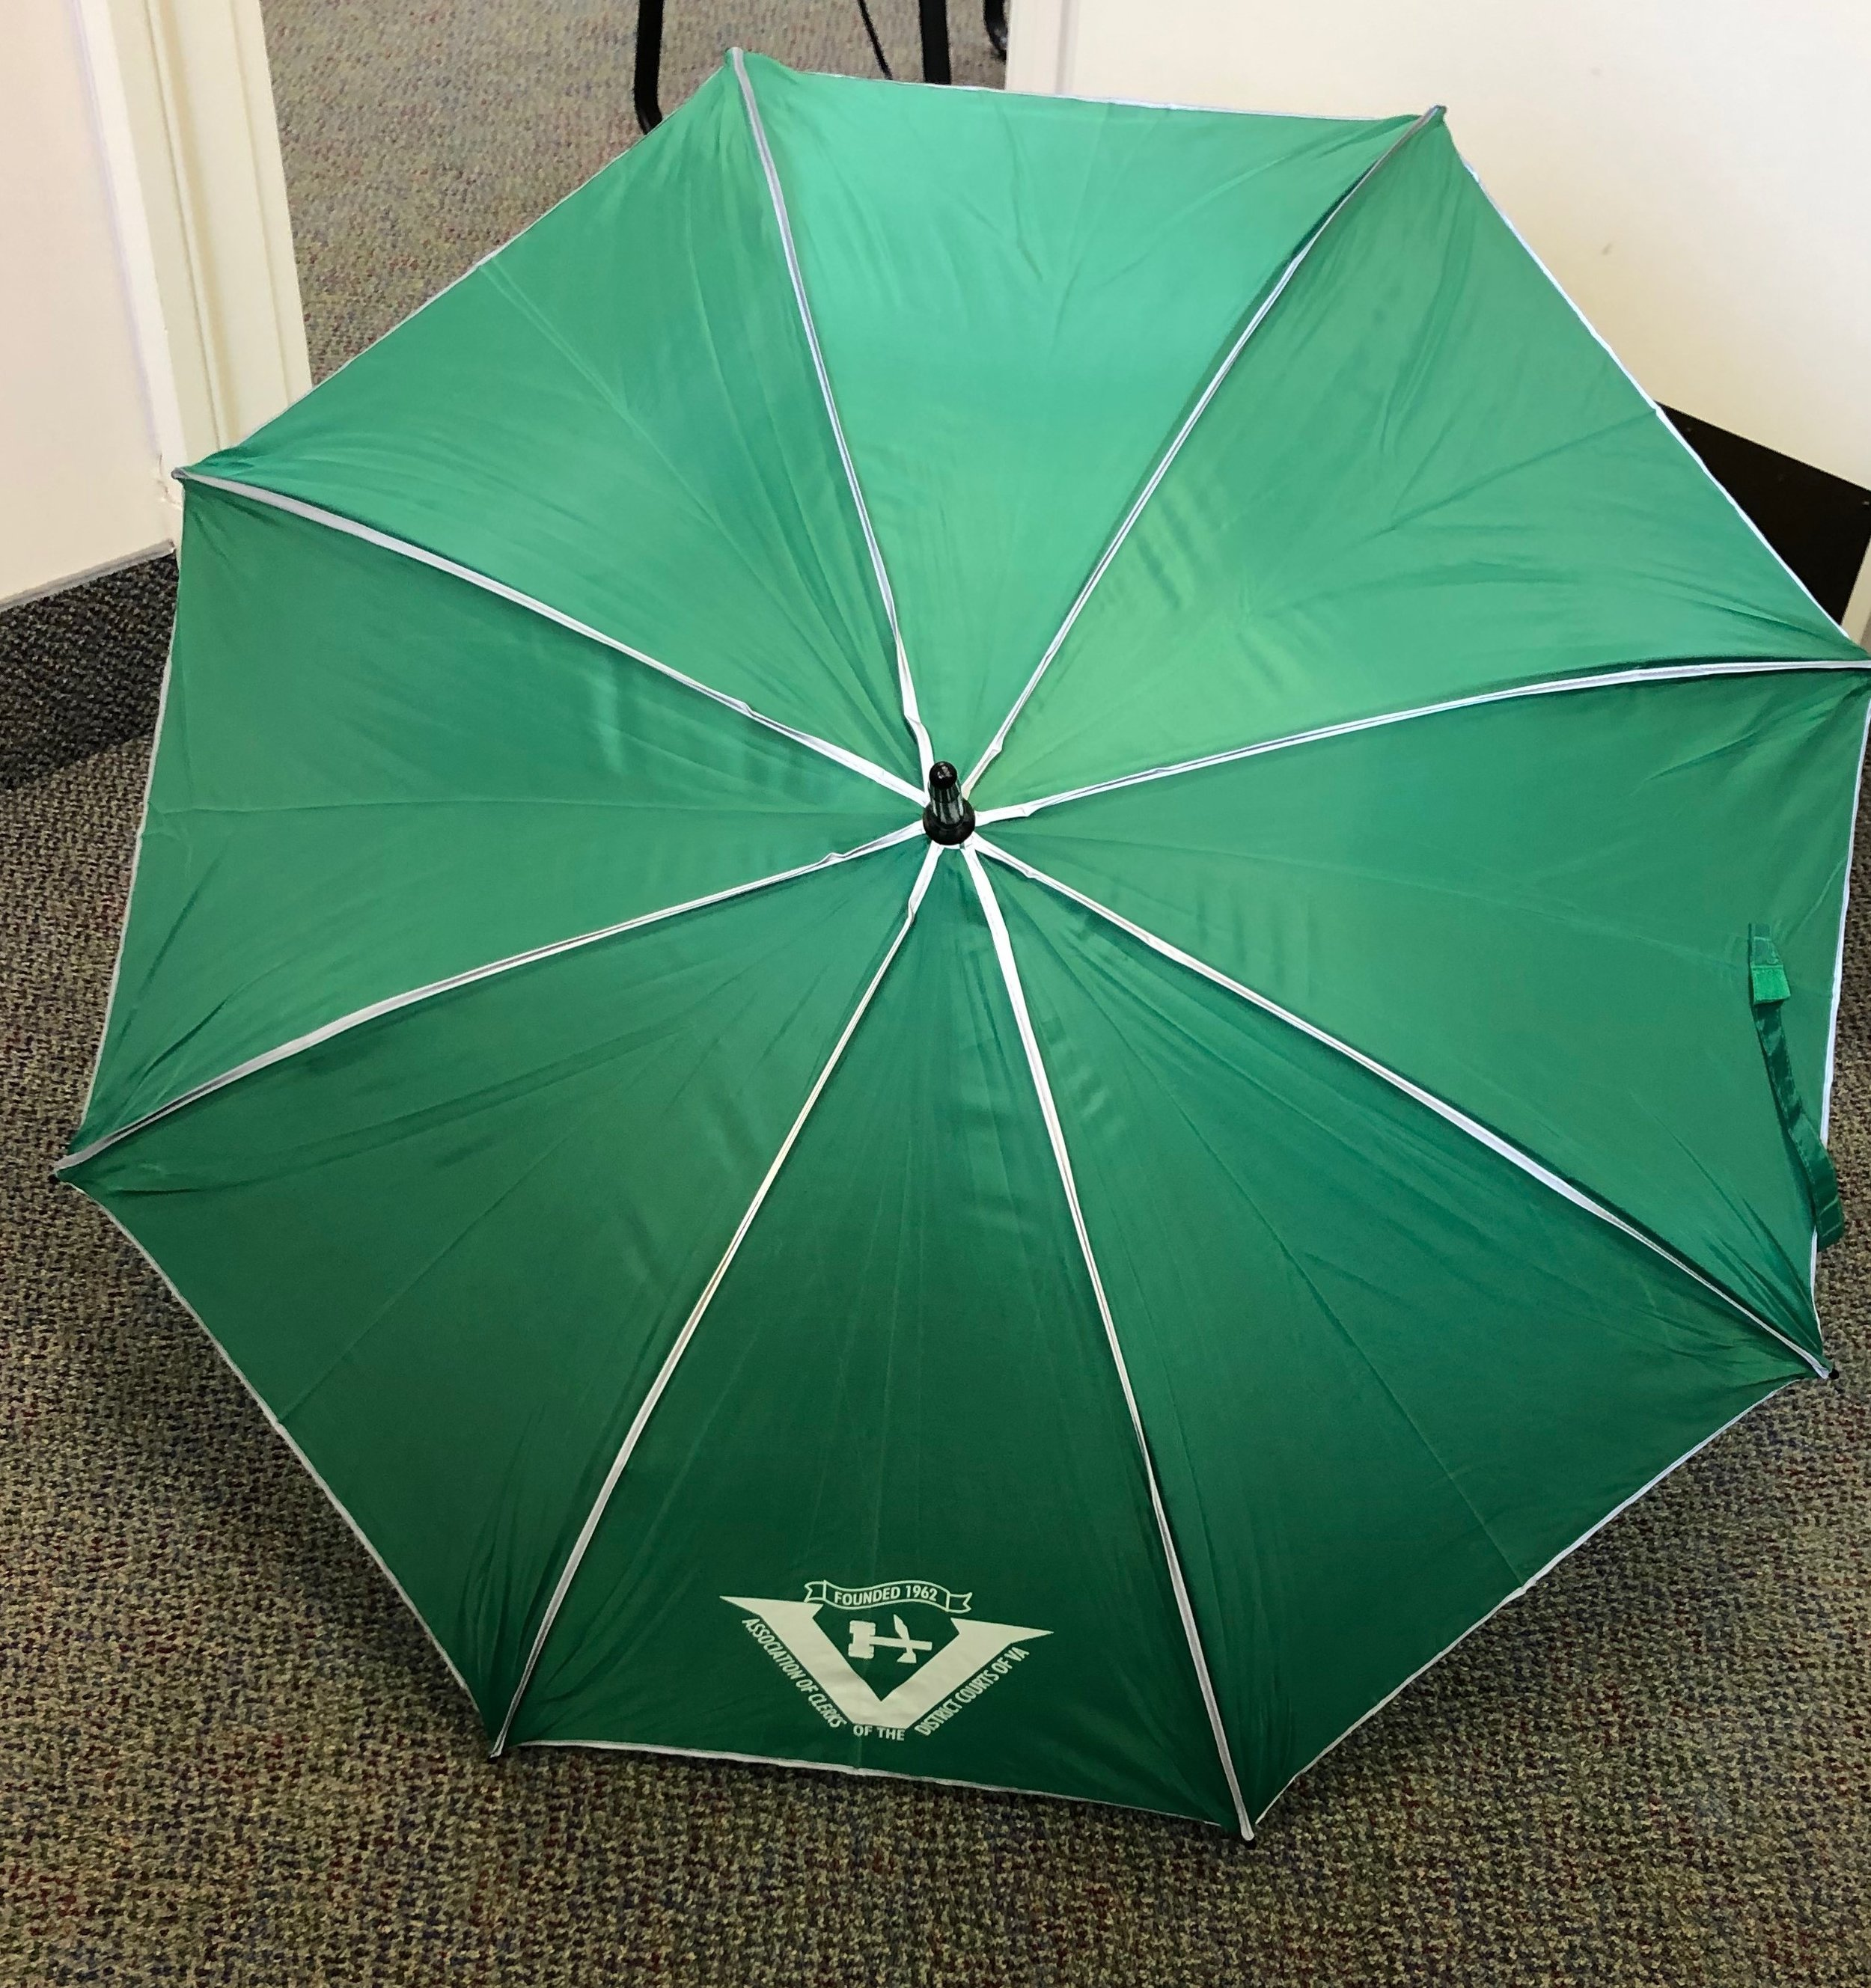 Green Umbrella $20.00